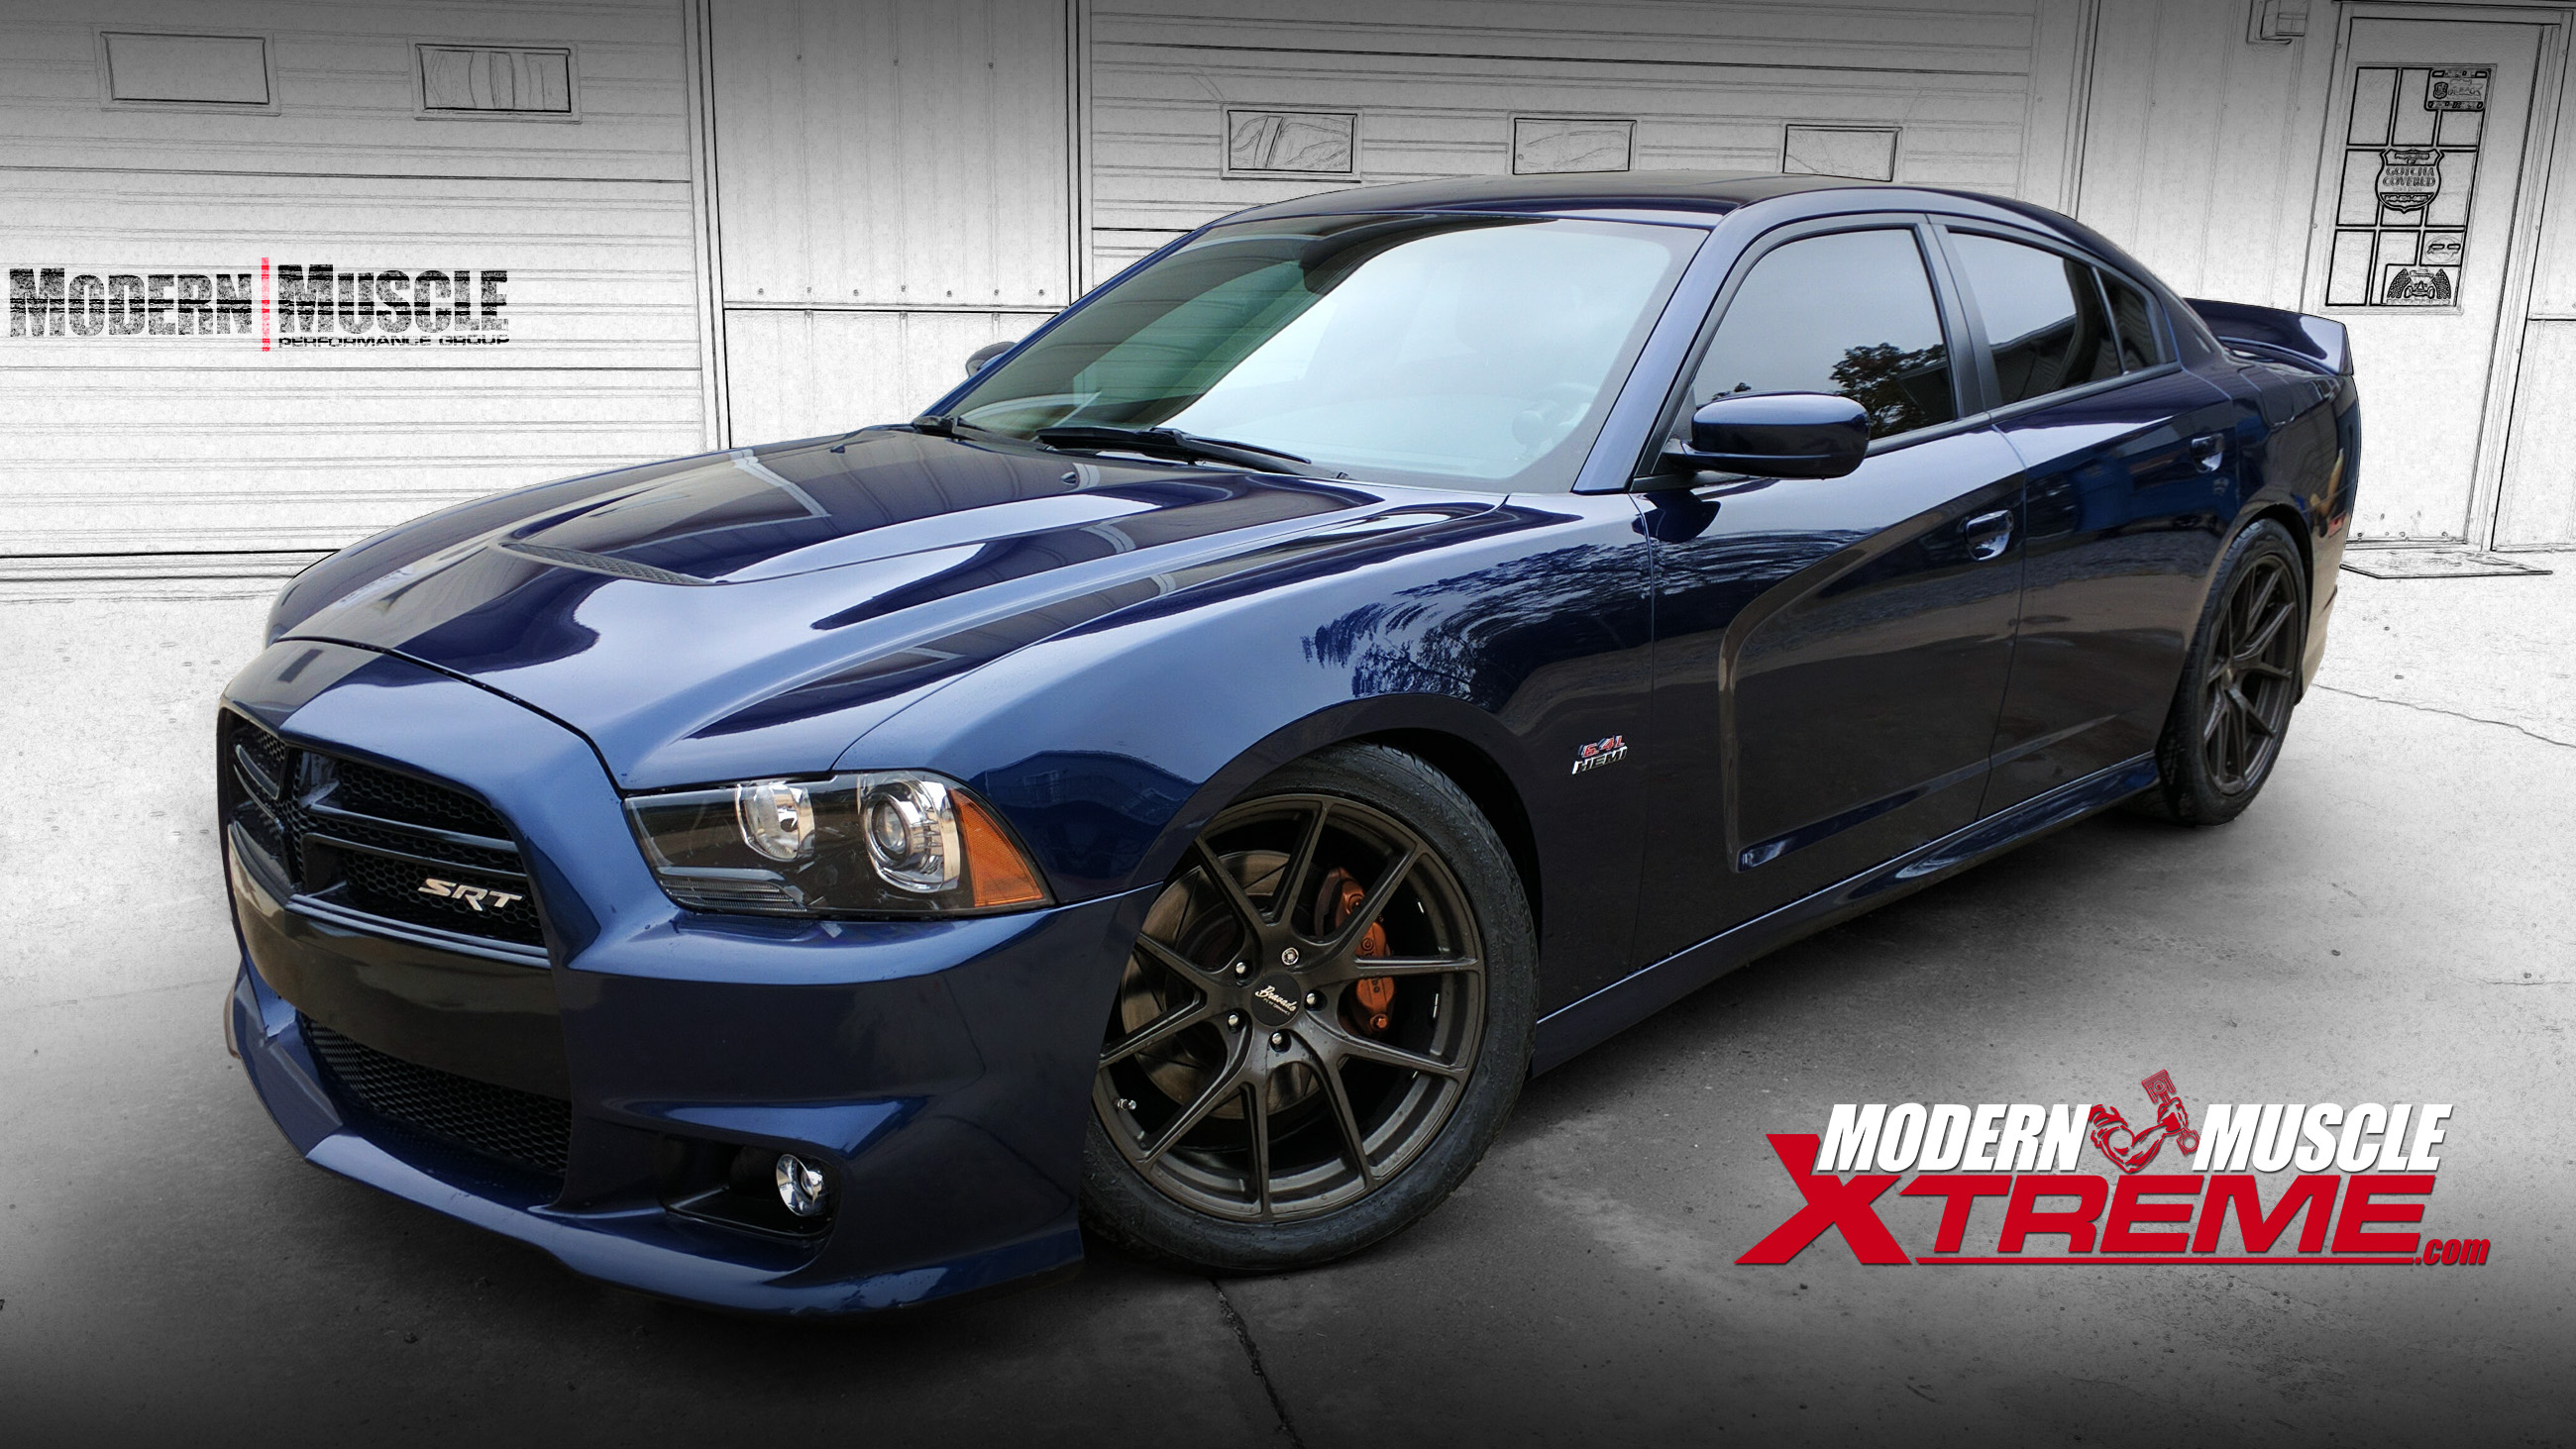 Forged 392 HEMI Engine Procharger Supercharged 2013 Charger Build by Modern Muscle Performance